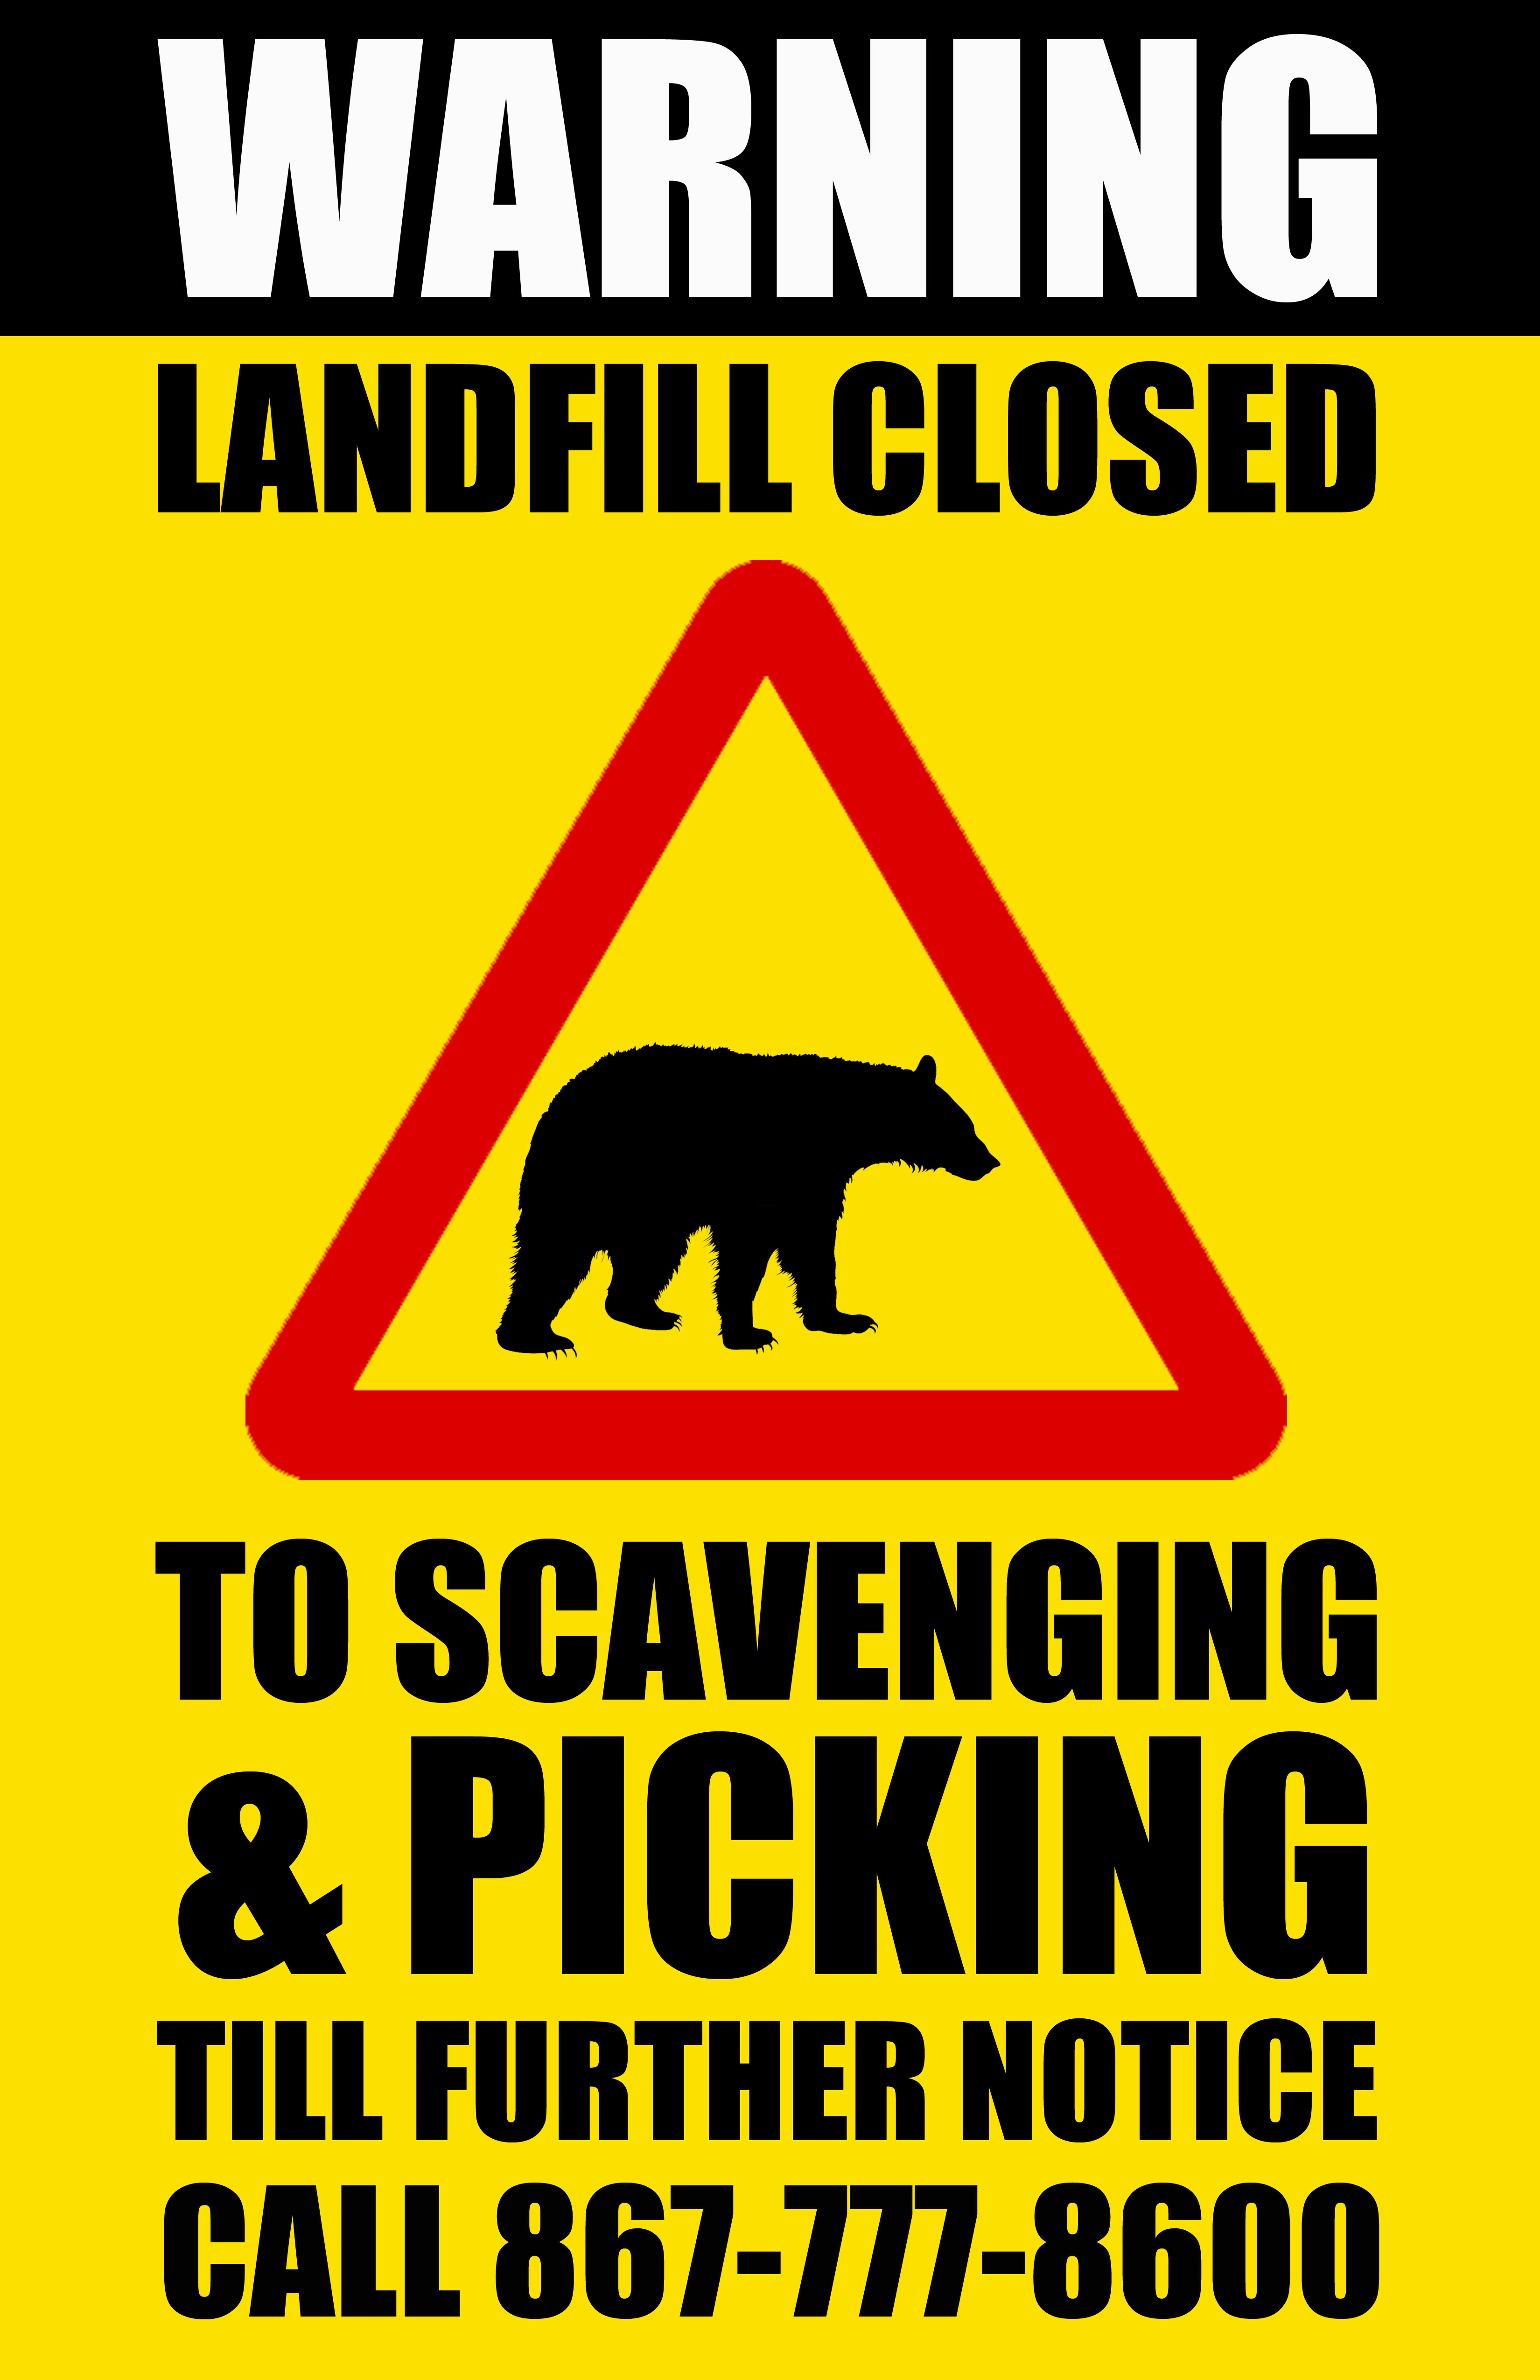 Landfill Closed for Scavenging